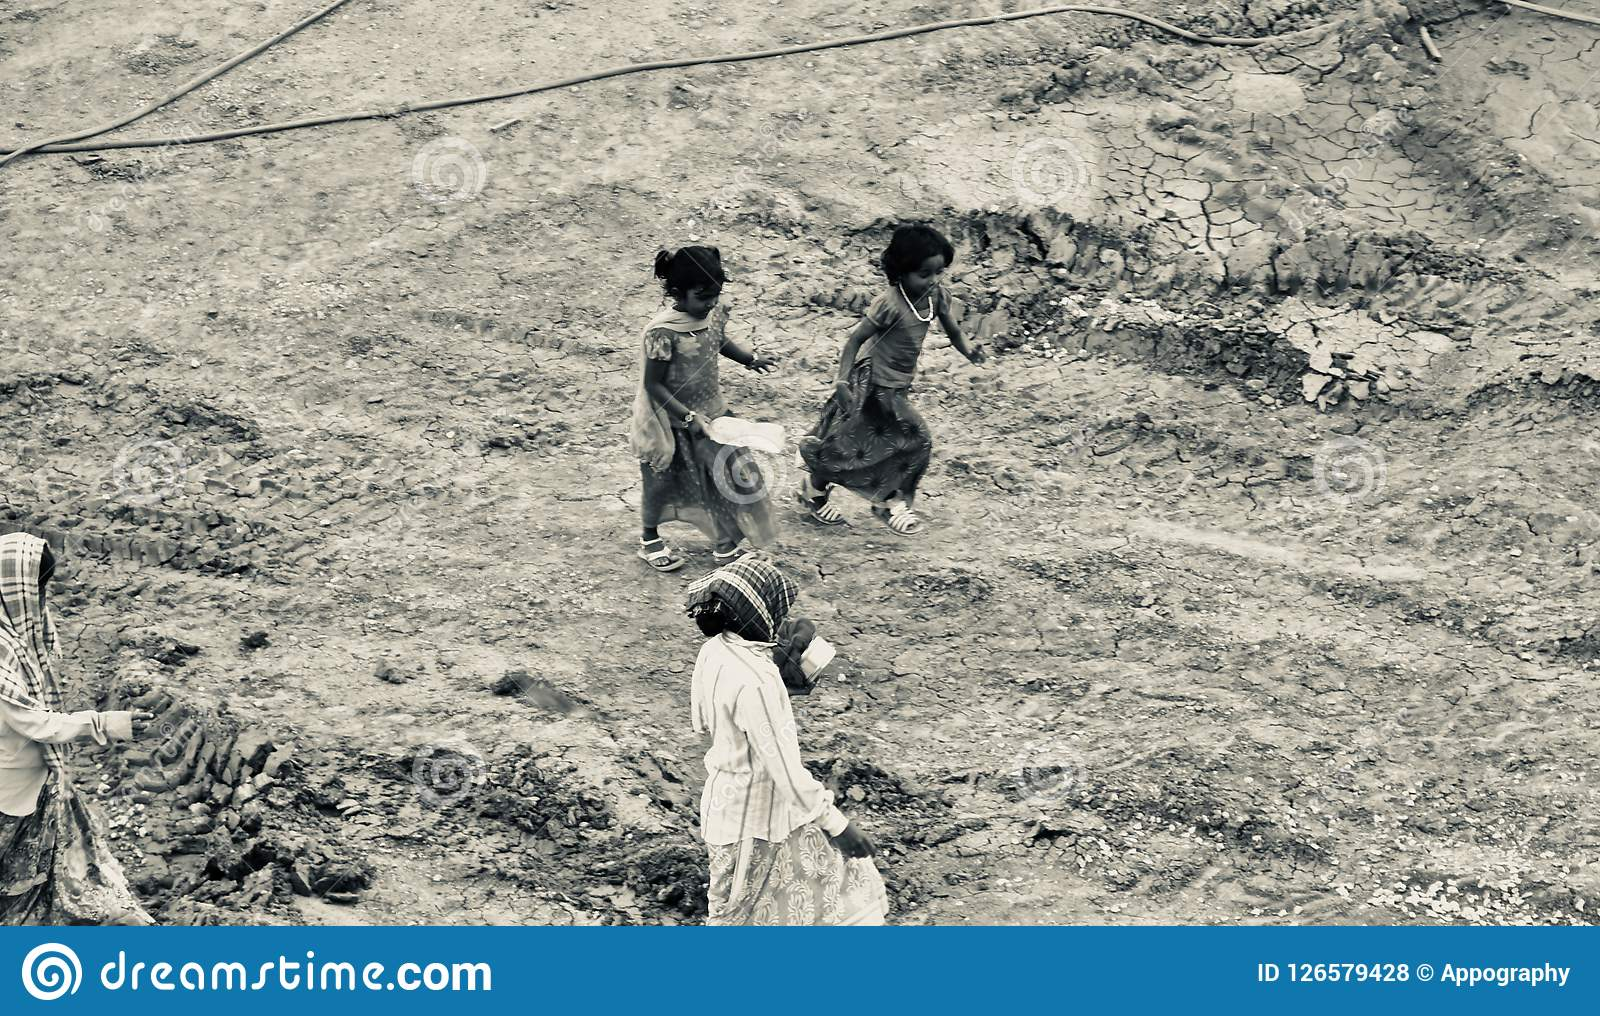 Poor Indian women workers walking through a construction site